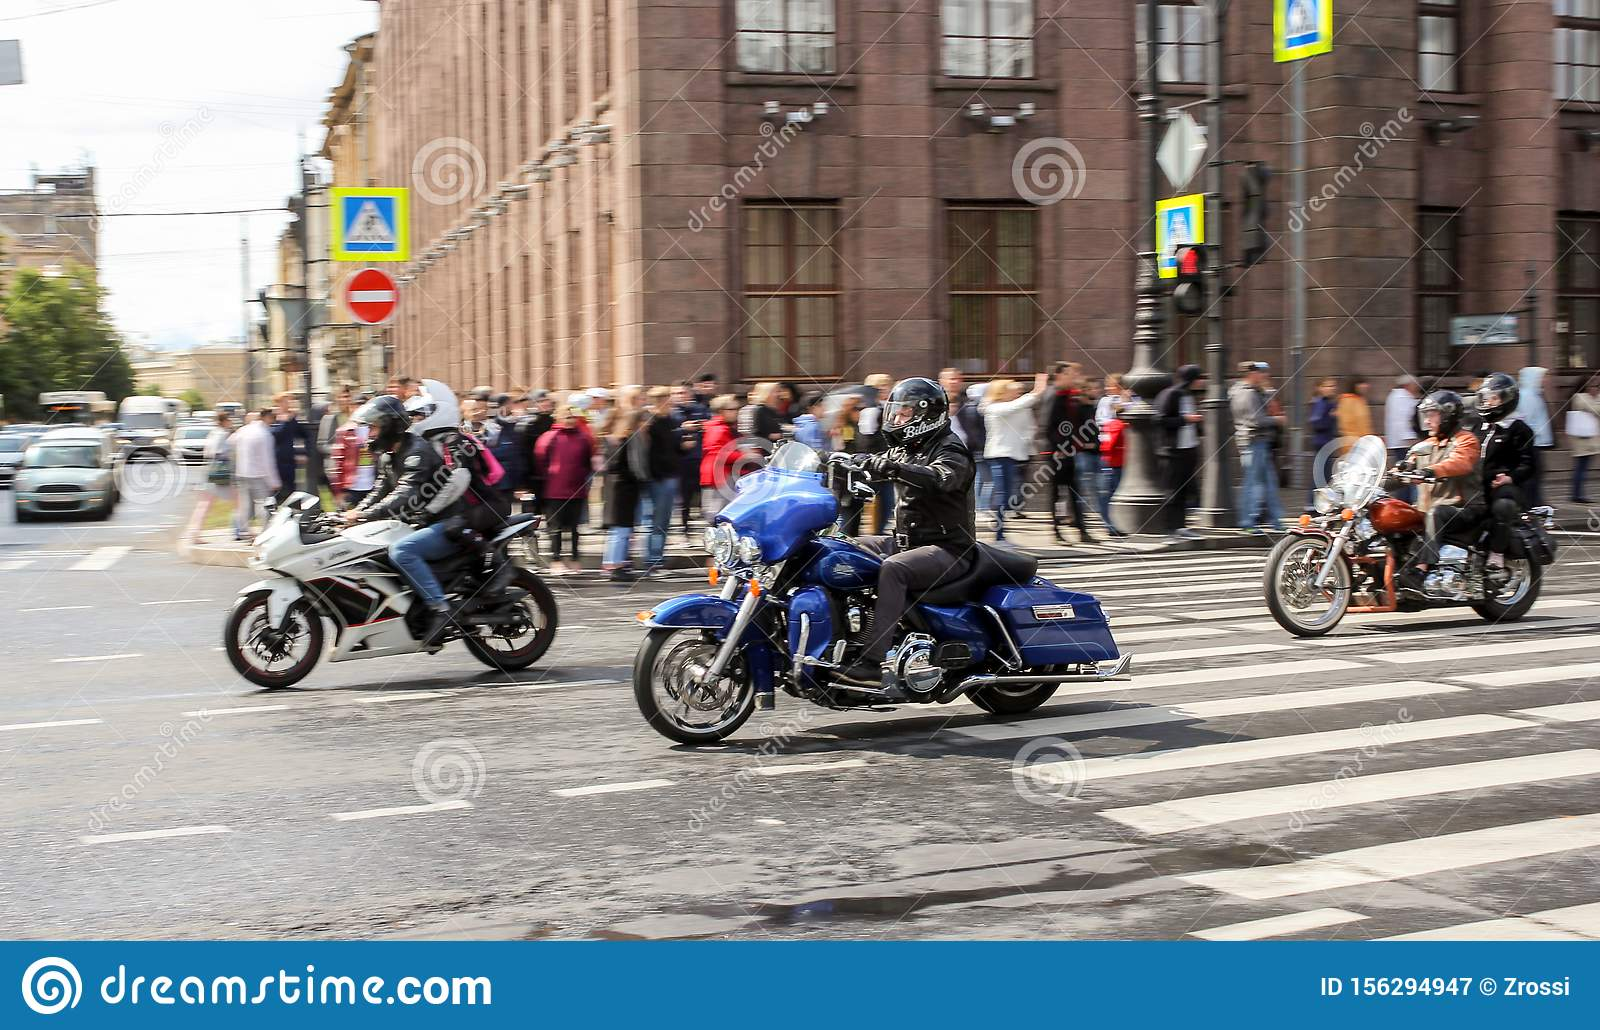 A group of motorcyclists pass by spectators